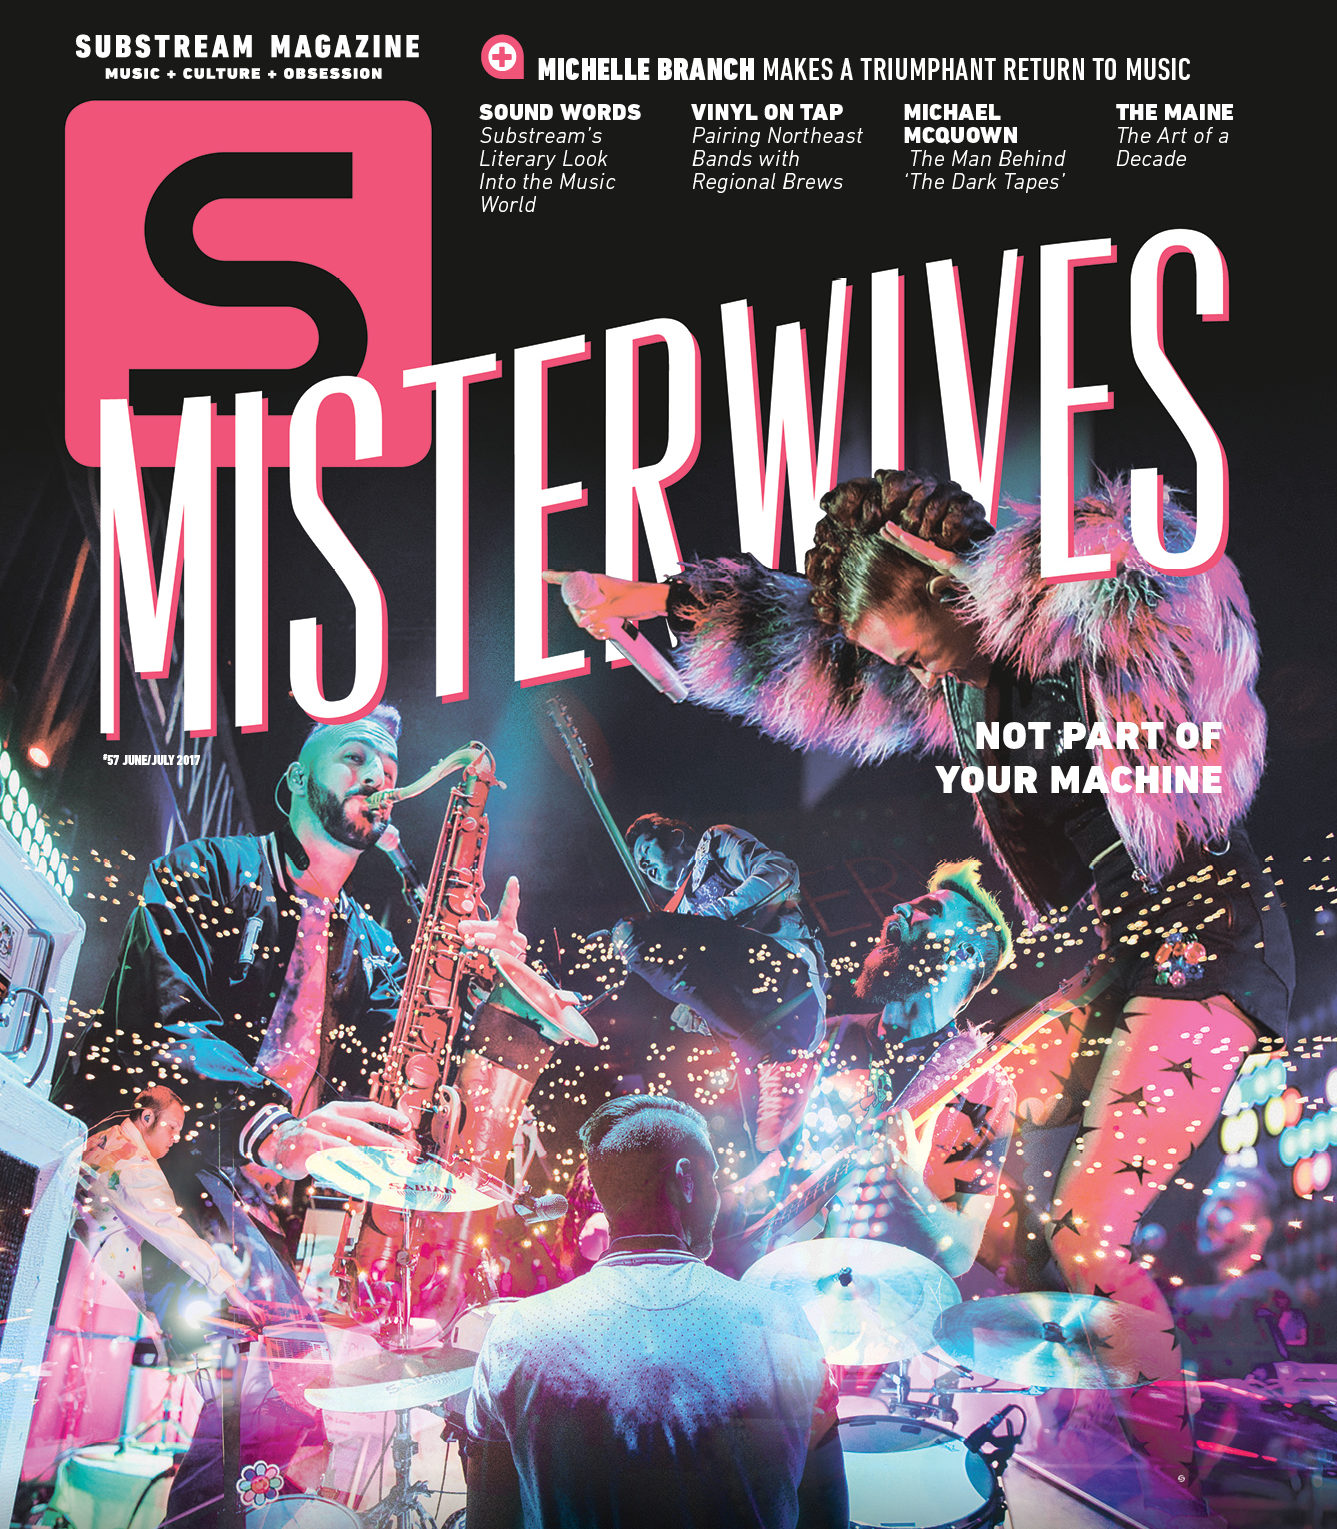 Substream #57 starring Misterwives, K.Flay, Chase Atlantic + more